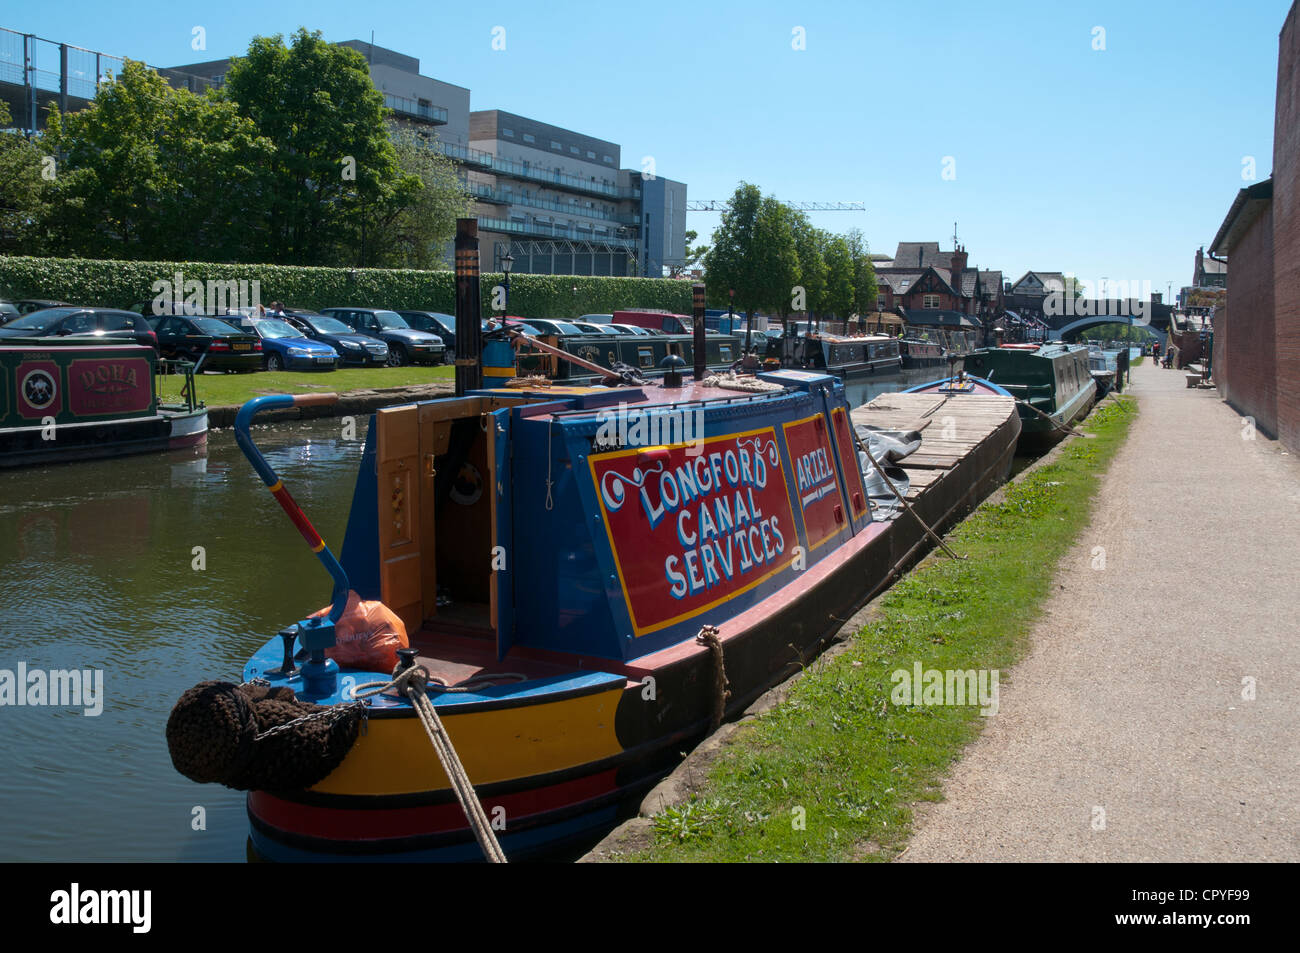 Narrowboats on the Bridgewater Canal at Sale Waterside, Cheshire, England, UK - Stock Image